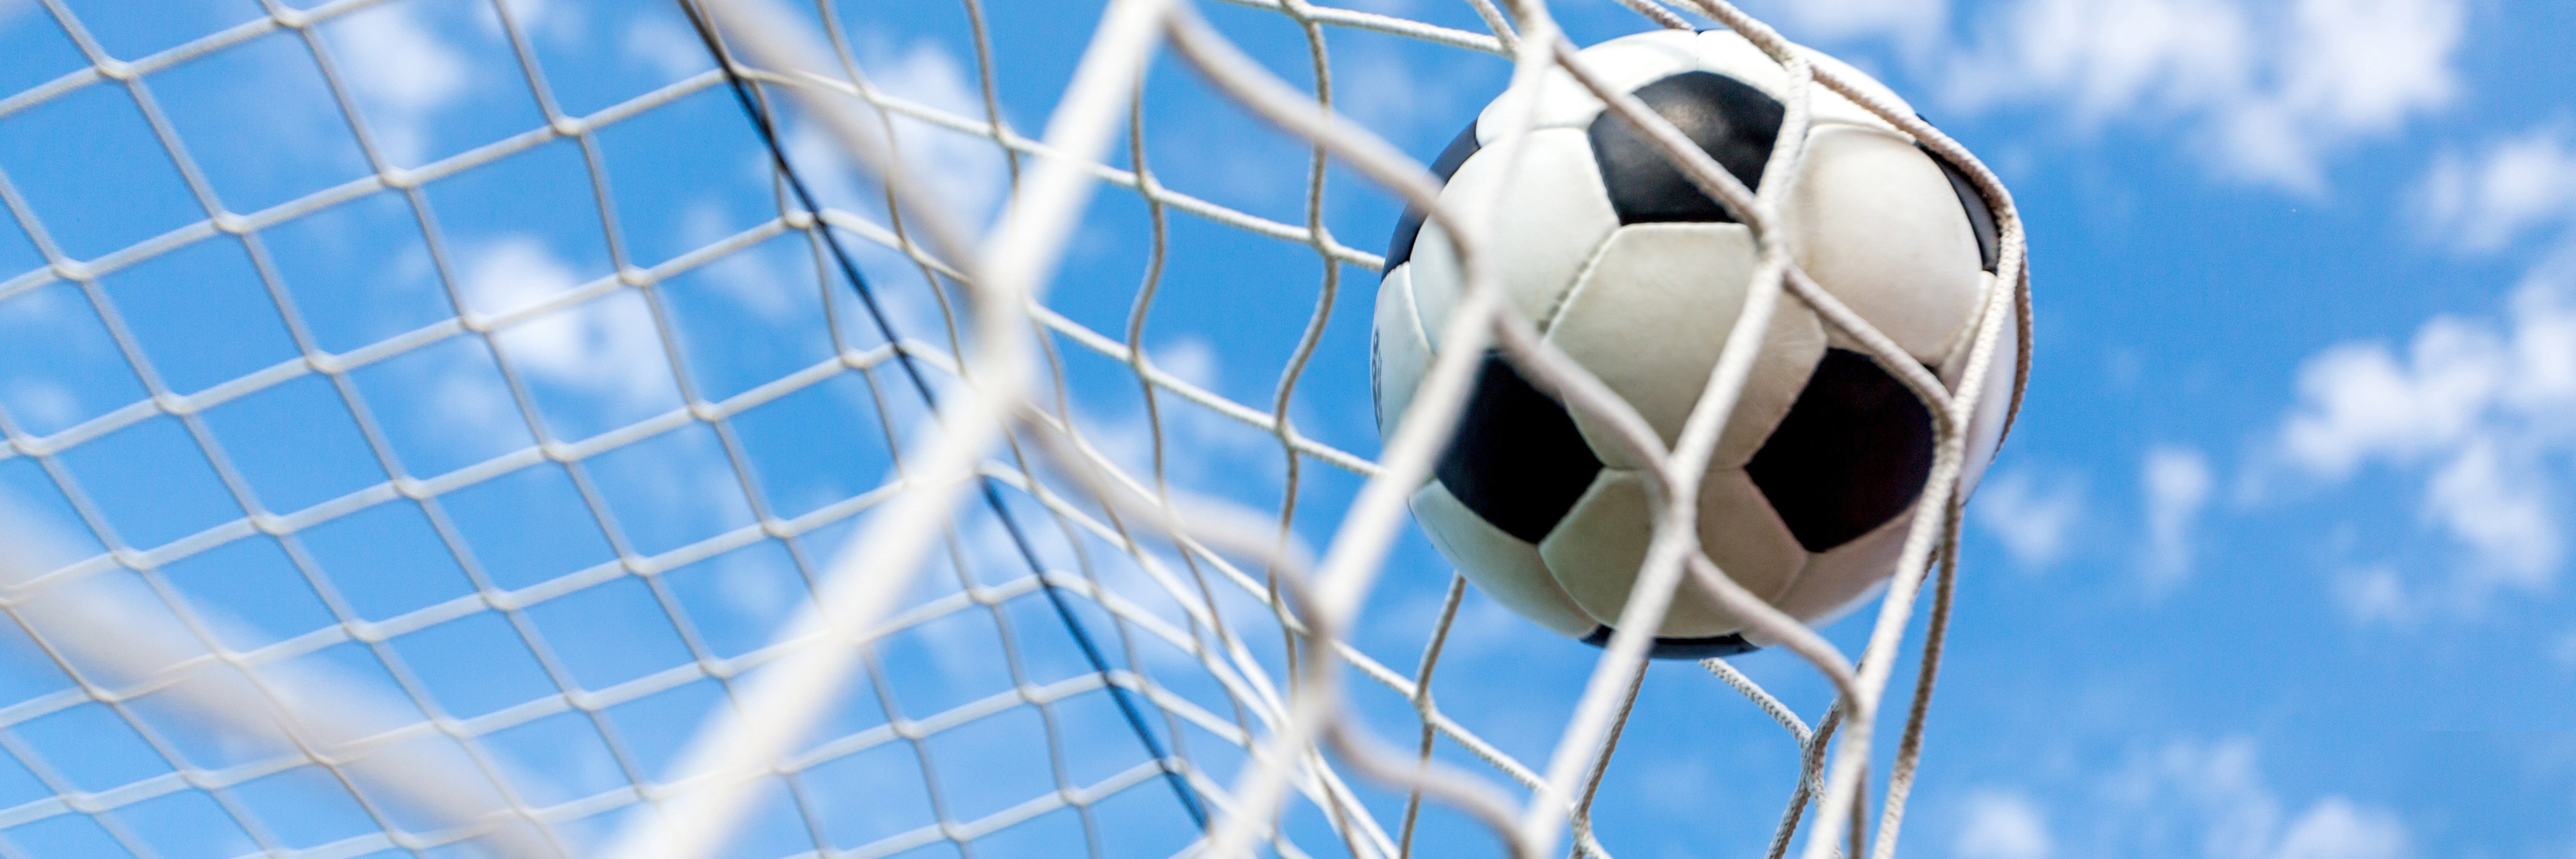 Premier League promotes football analytics with Oracle Cloud